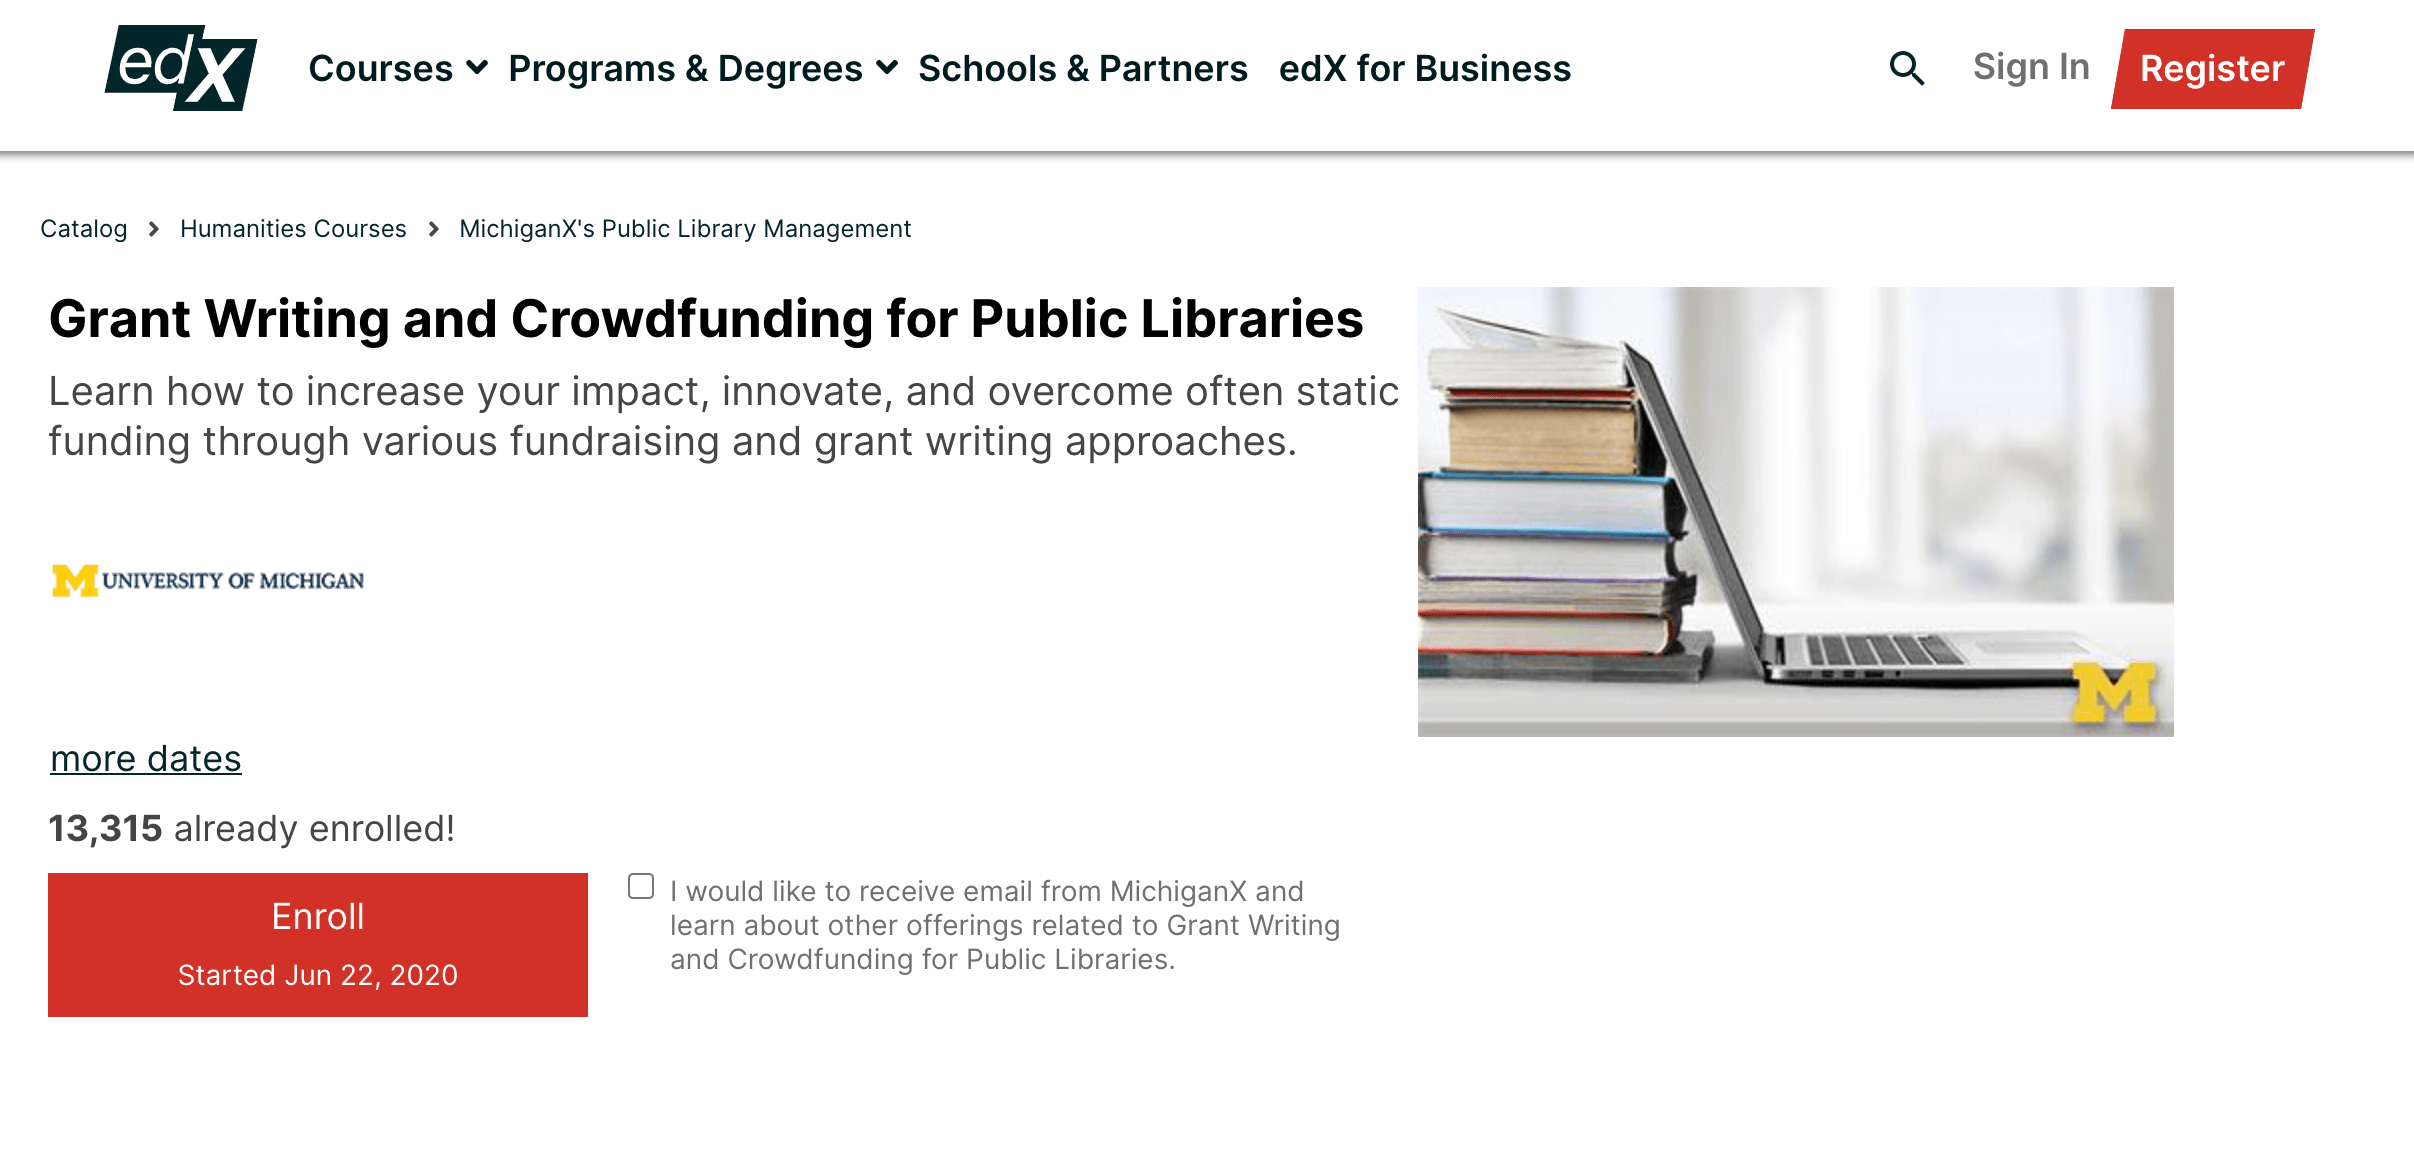 Grant-Writing-and-Crowdfunding-for-Public-Libraries-edX